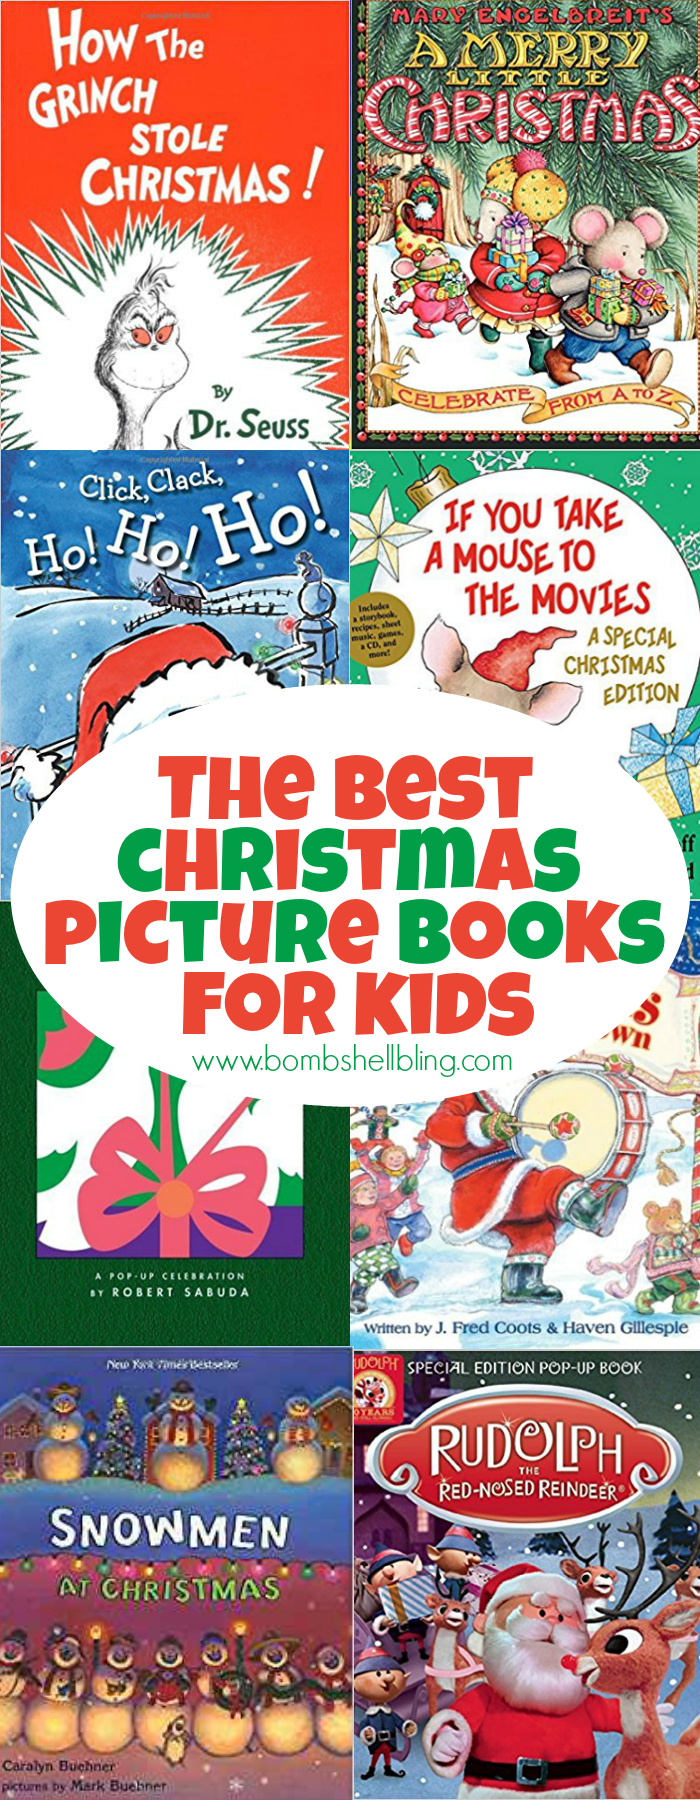 This list of the best Christmas picture books for kids will help families enjoy the holiday season even more. Reading together is a wonderful way to build holiday traditions.